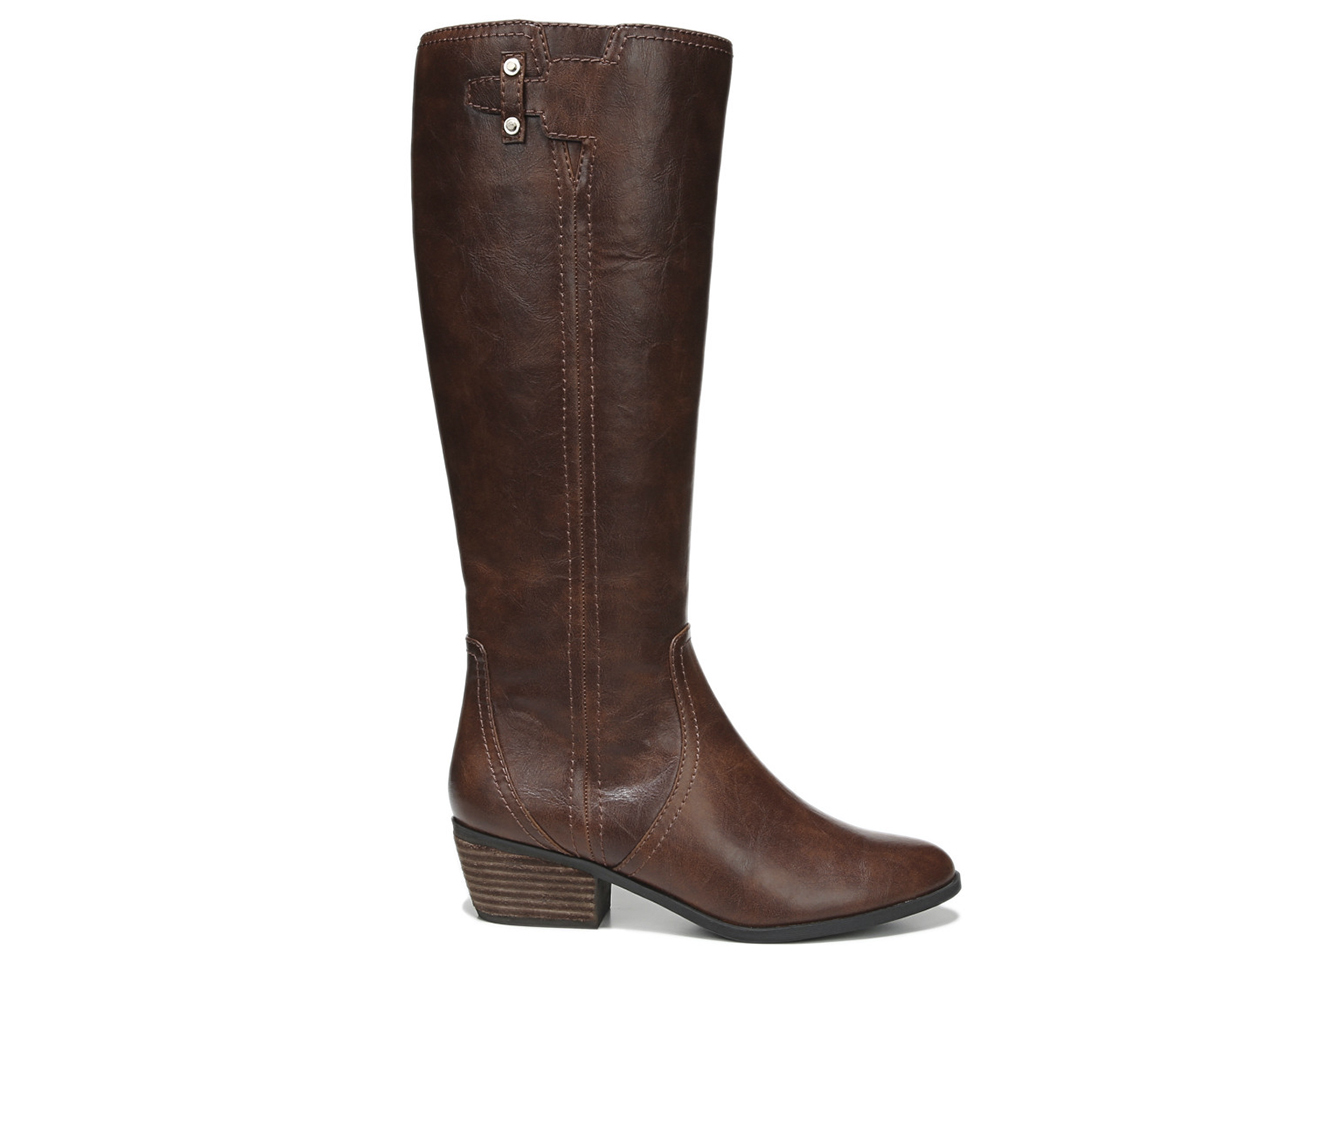 Dr. Scholls Brilliance Women's Boot (Brown Faux Leather)